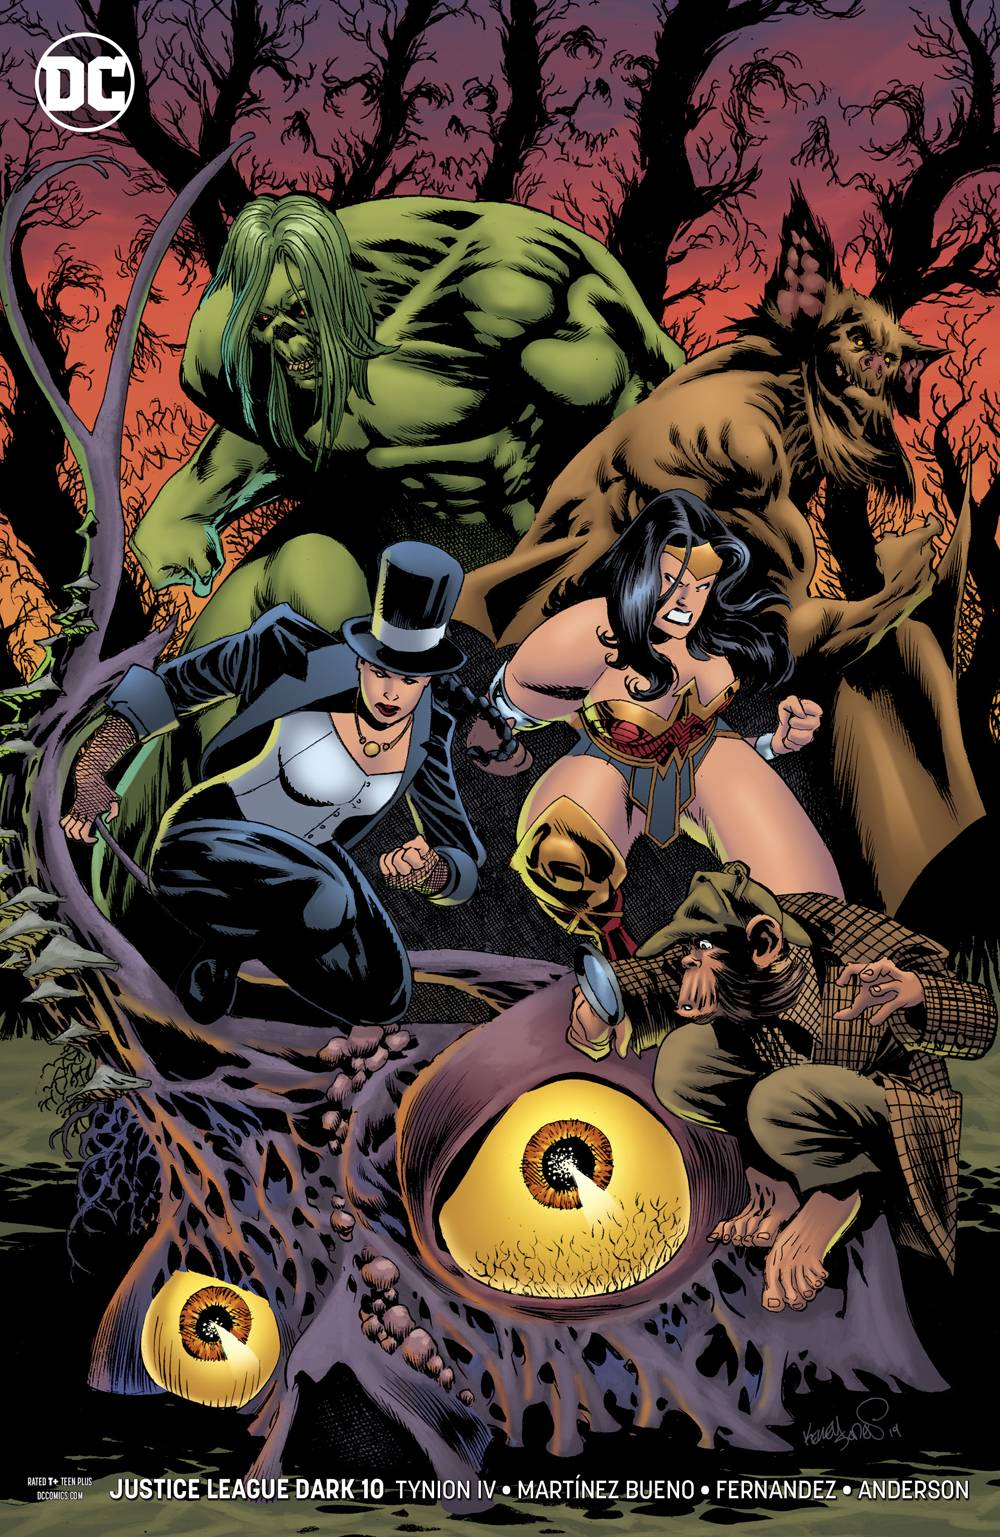 JUSTICE LEAGUE DARK 10 VAR ED.jpg